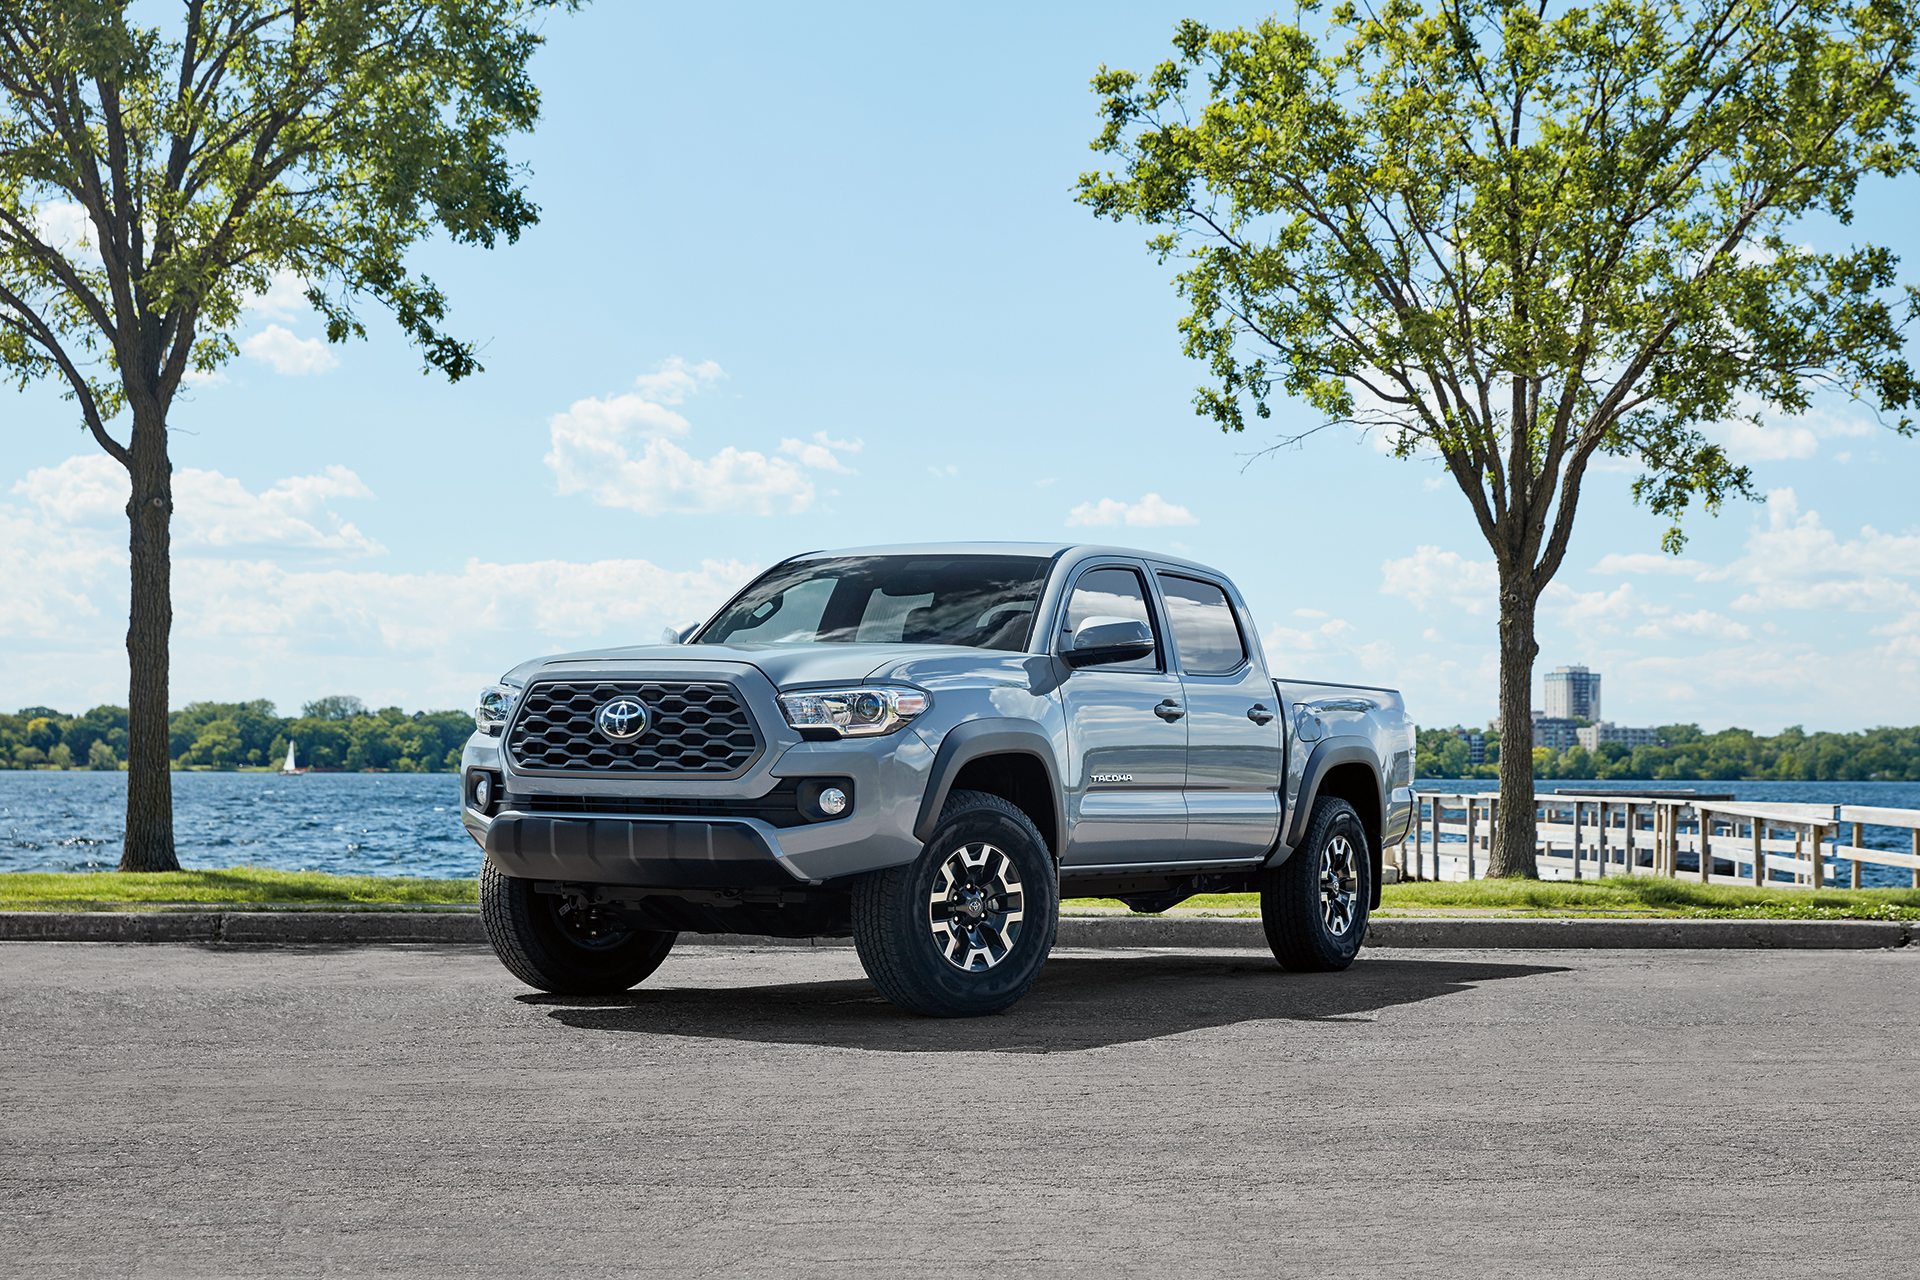 South Hills Toyota is a Toyota Dealership in Canonsburg near Washington PA | 2020 Toyota Tacoma parked by the water